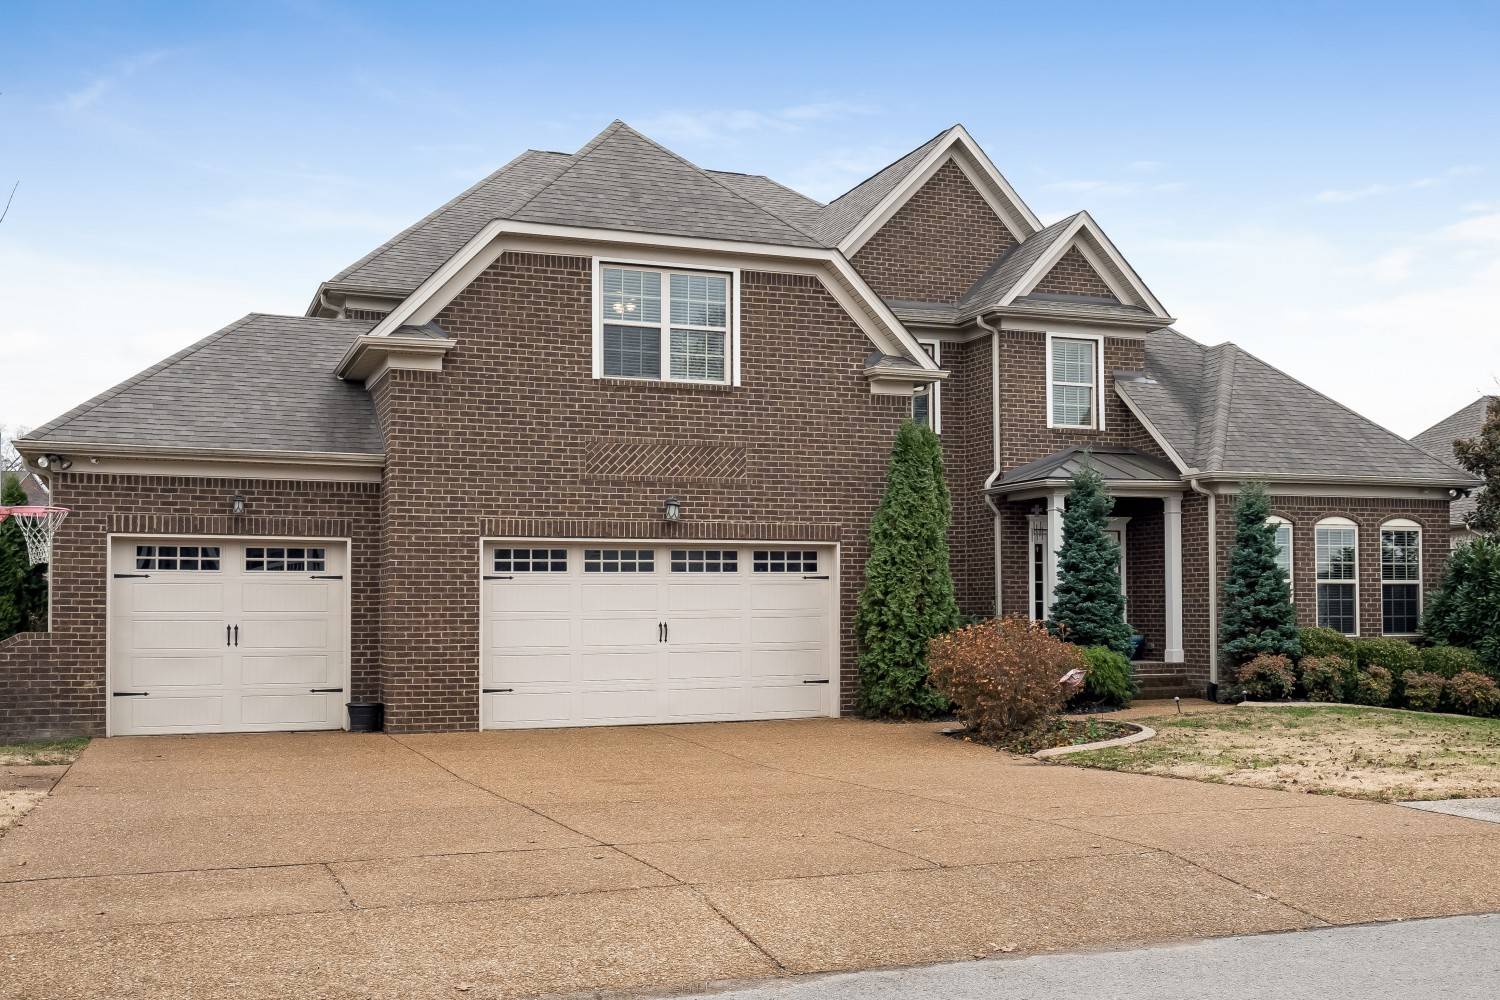 $749,900 - 8Br/6Ba -  for Sale in Spring Hill Place Sec 7, Spring Hill